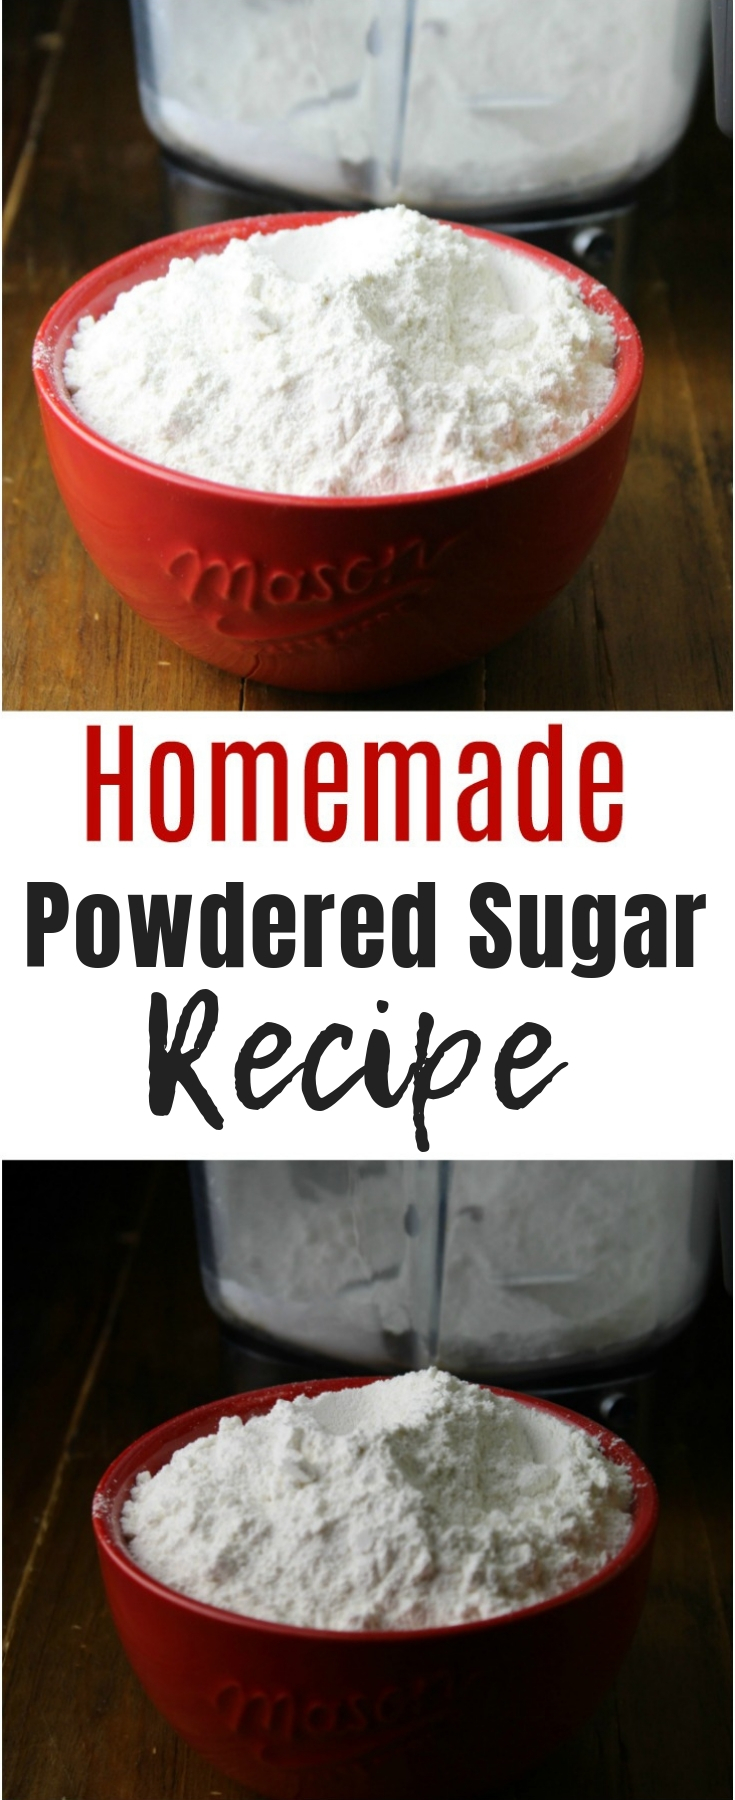 Learn how to make homemade powdered sugar at home with two simple ingredients right from your pantry! It's so easy you'll never run out again!